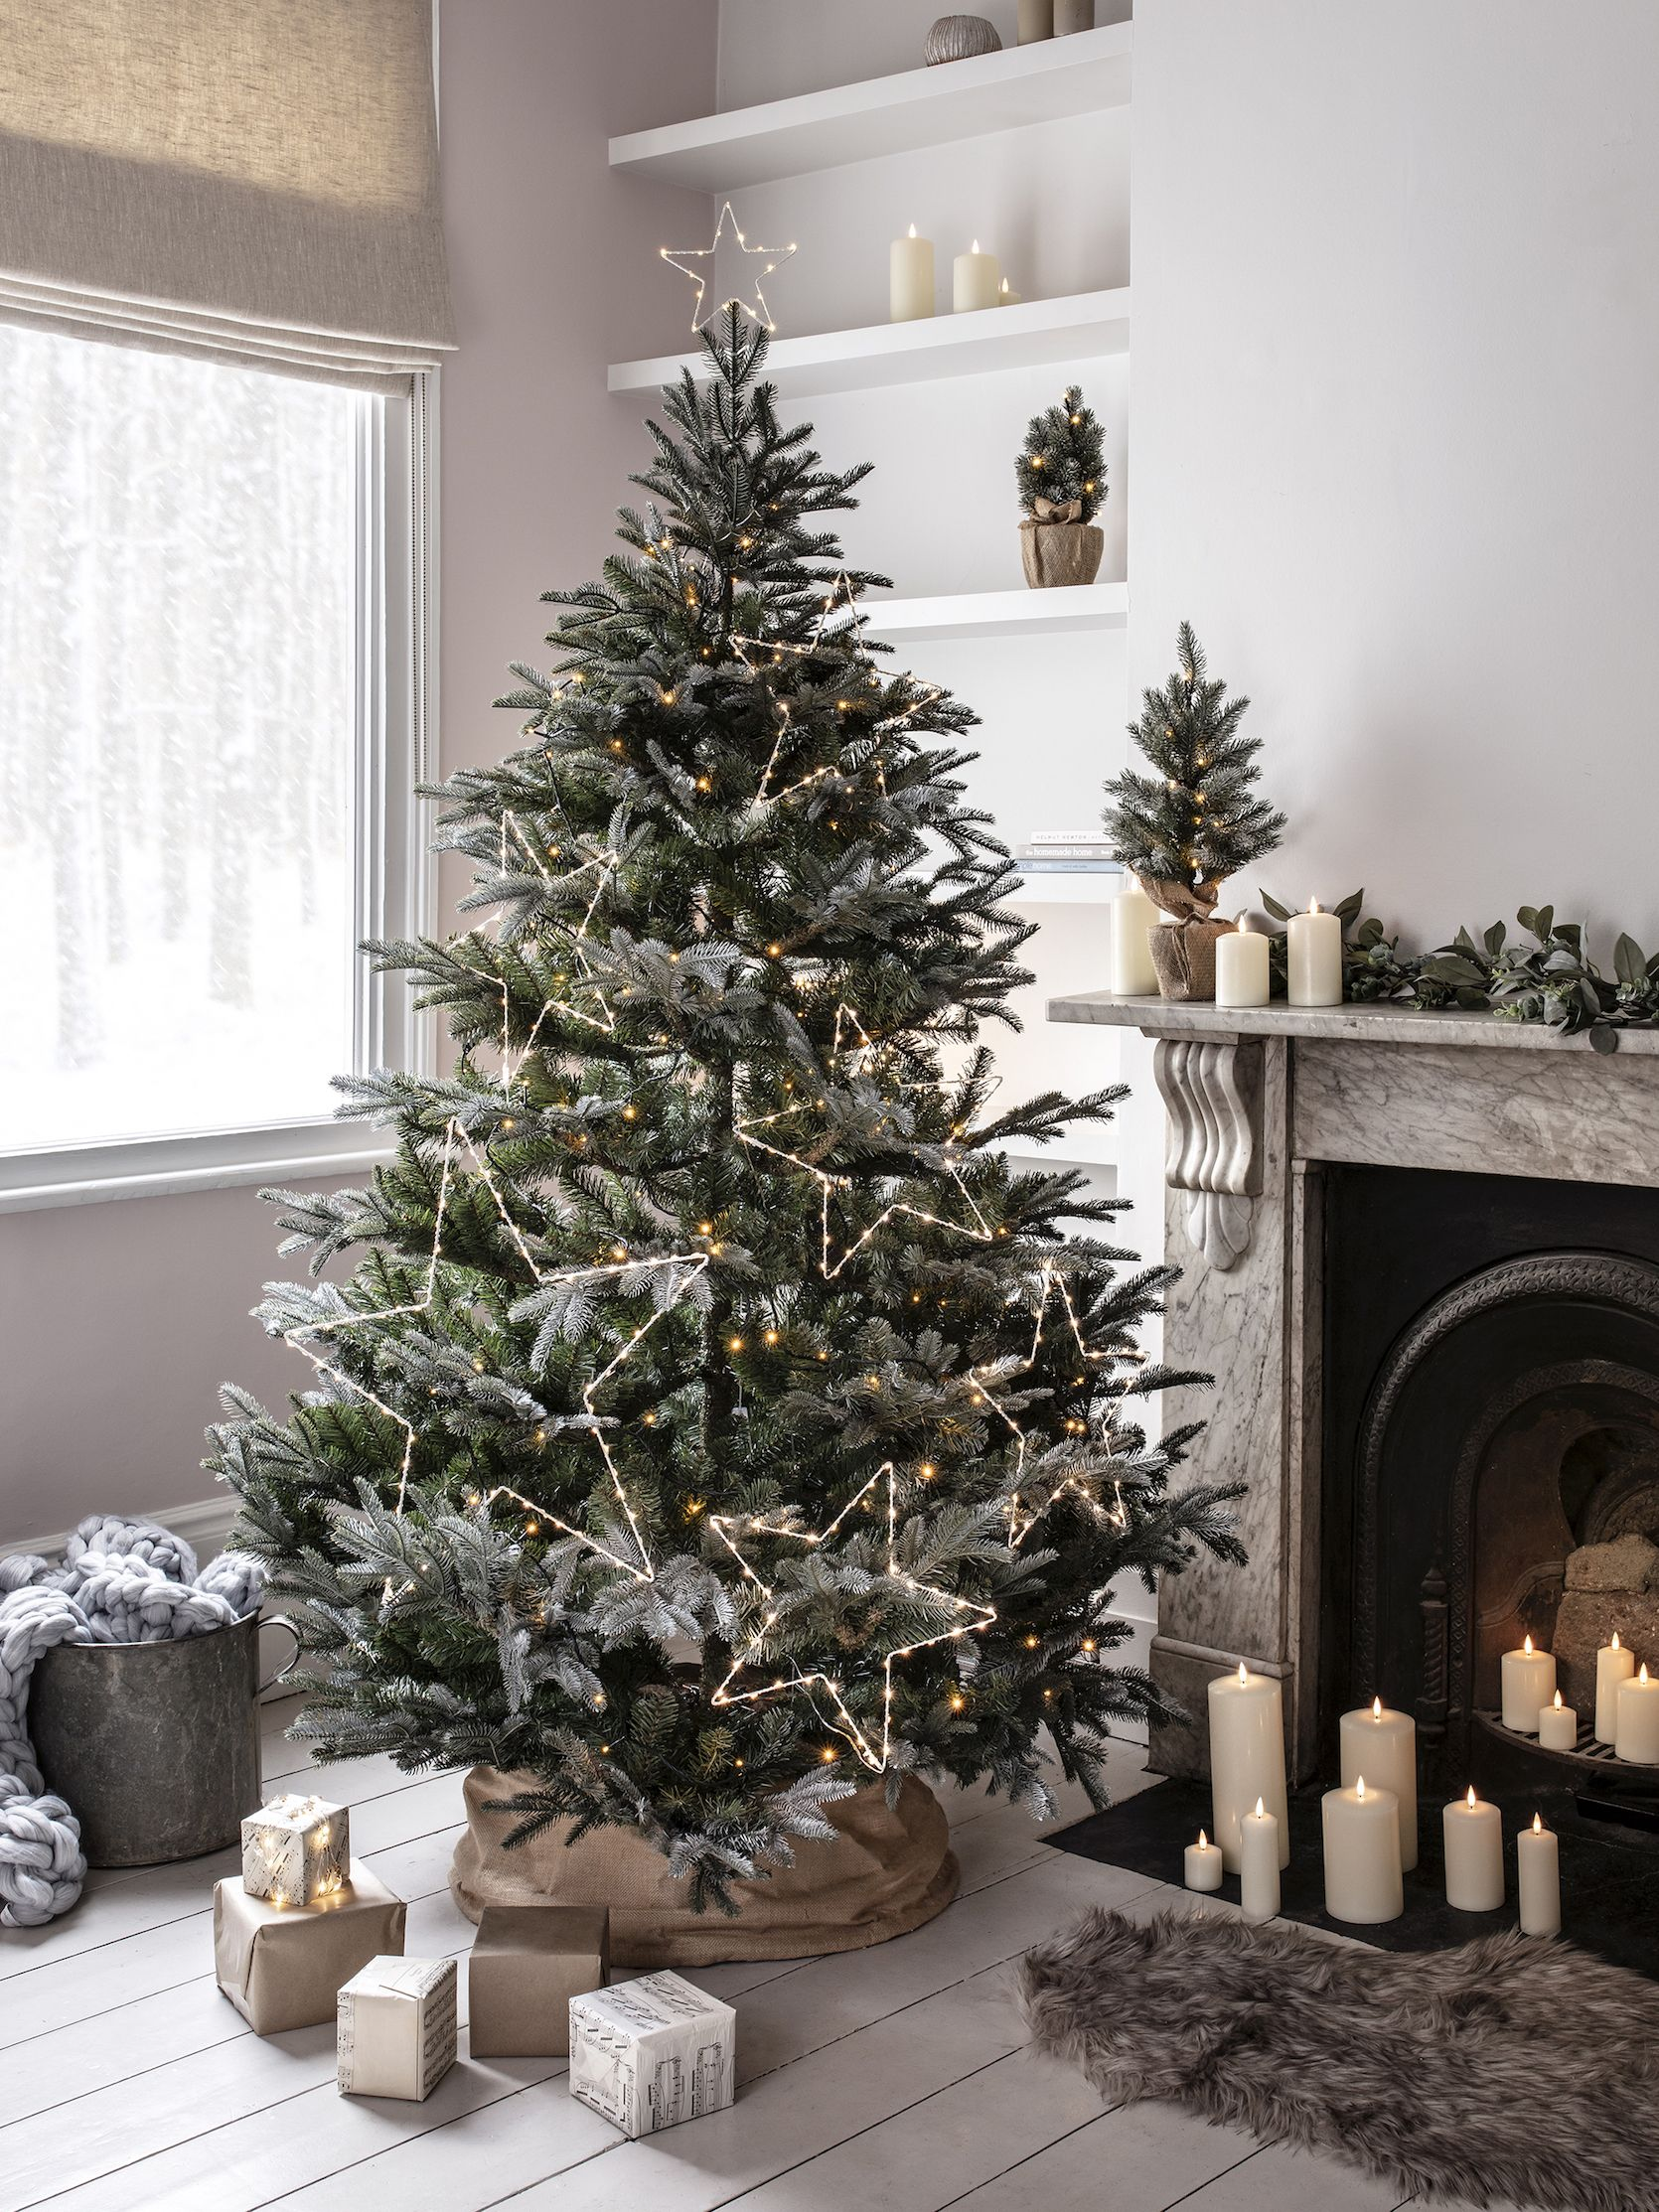 An Instagrammable Christmas: stylish festive decor for the home